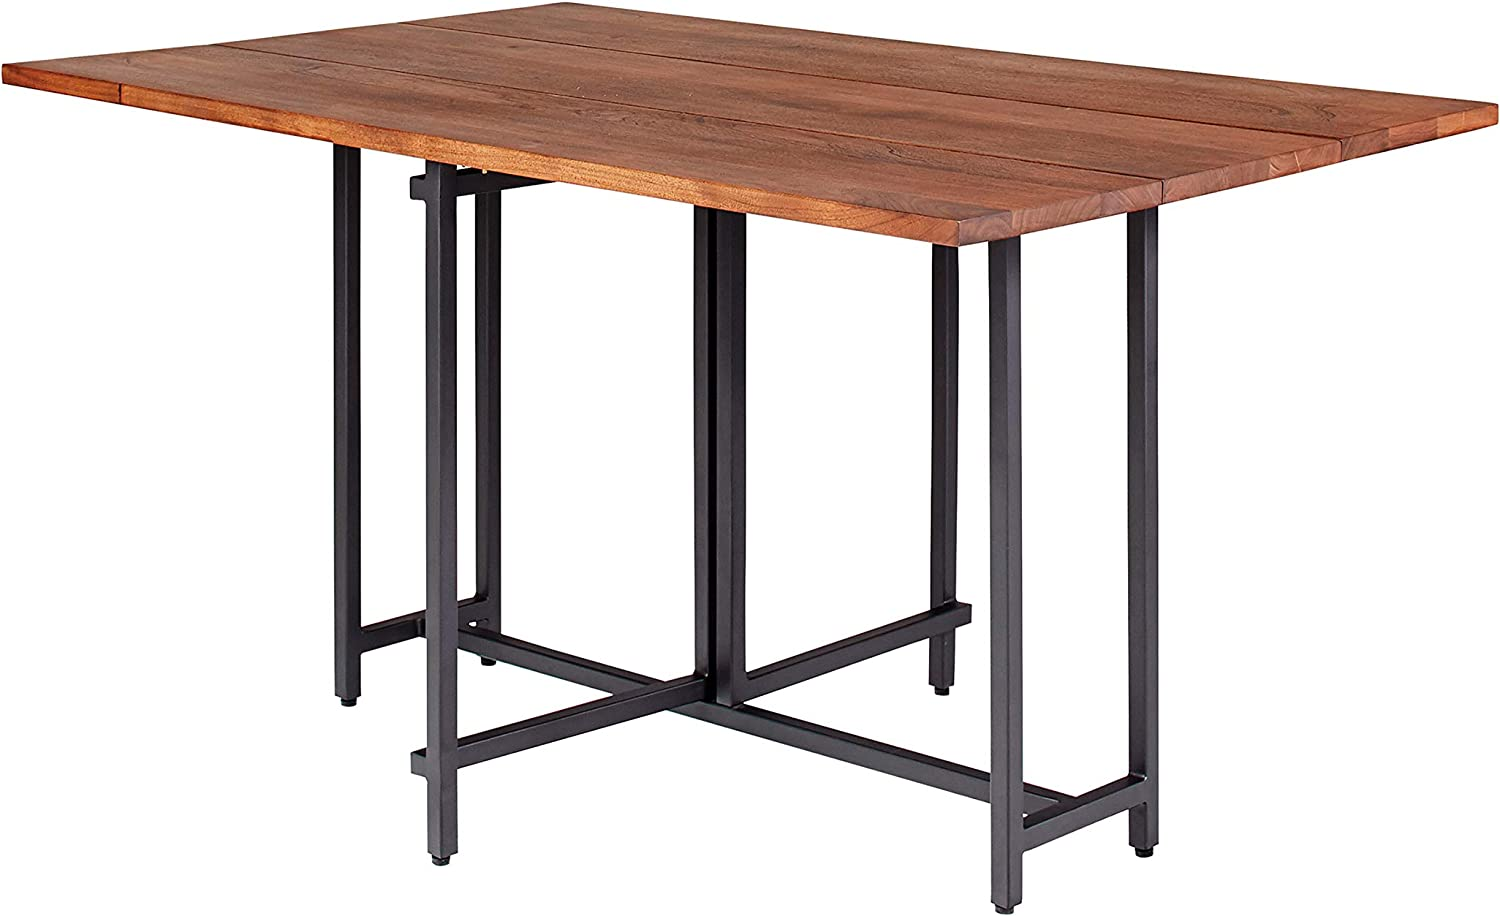 Coaster Home Furnishings Bridgeport Two Drop Leaves Warm Brown Dining Table